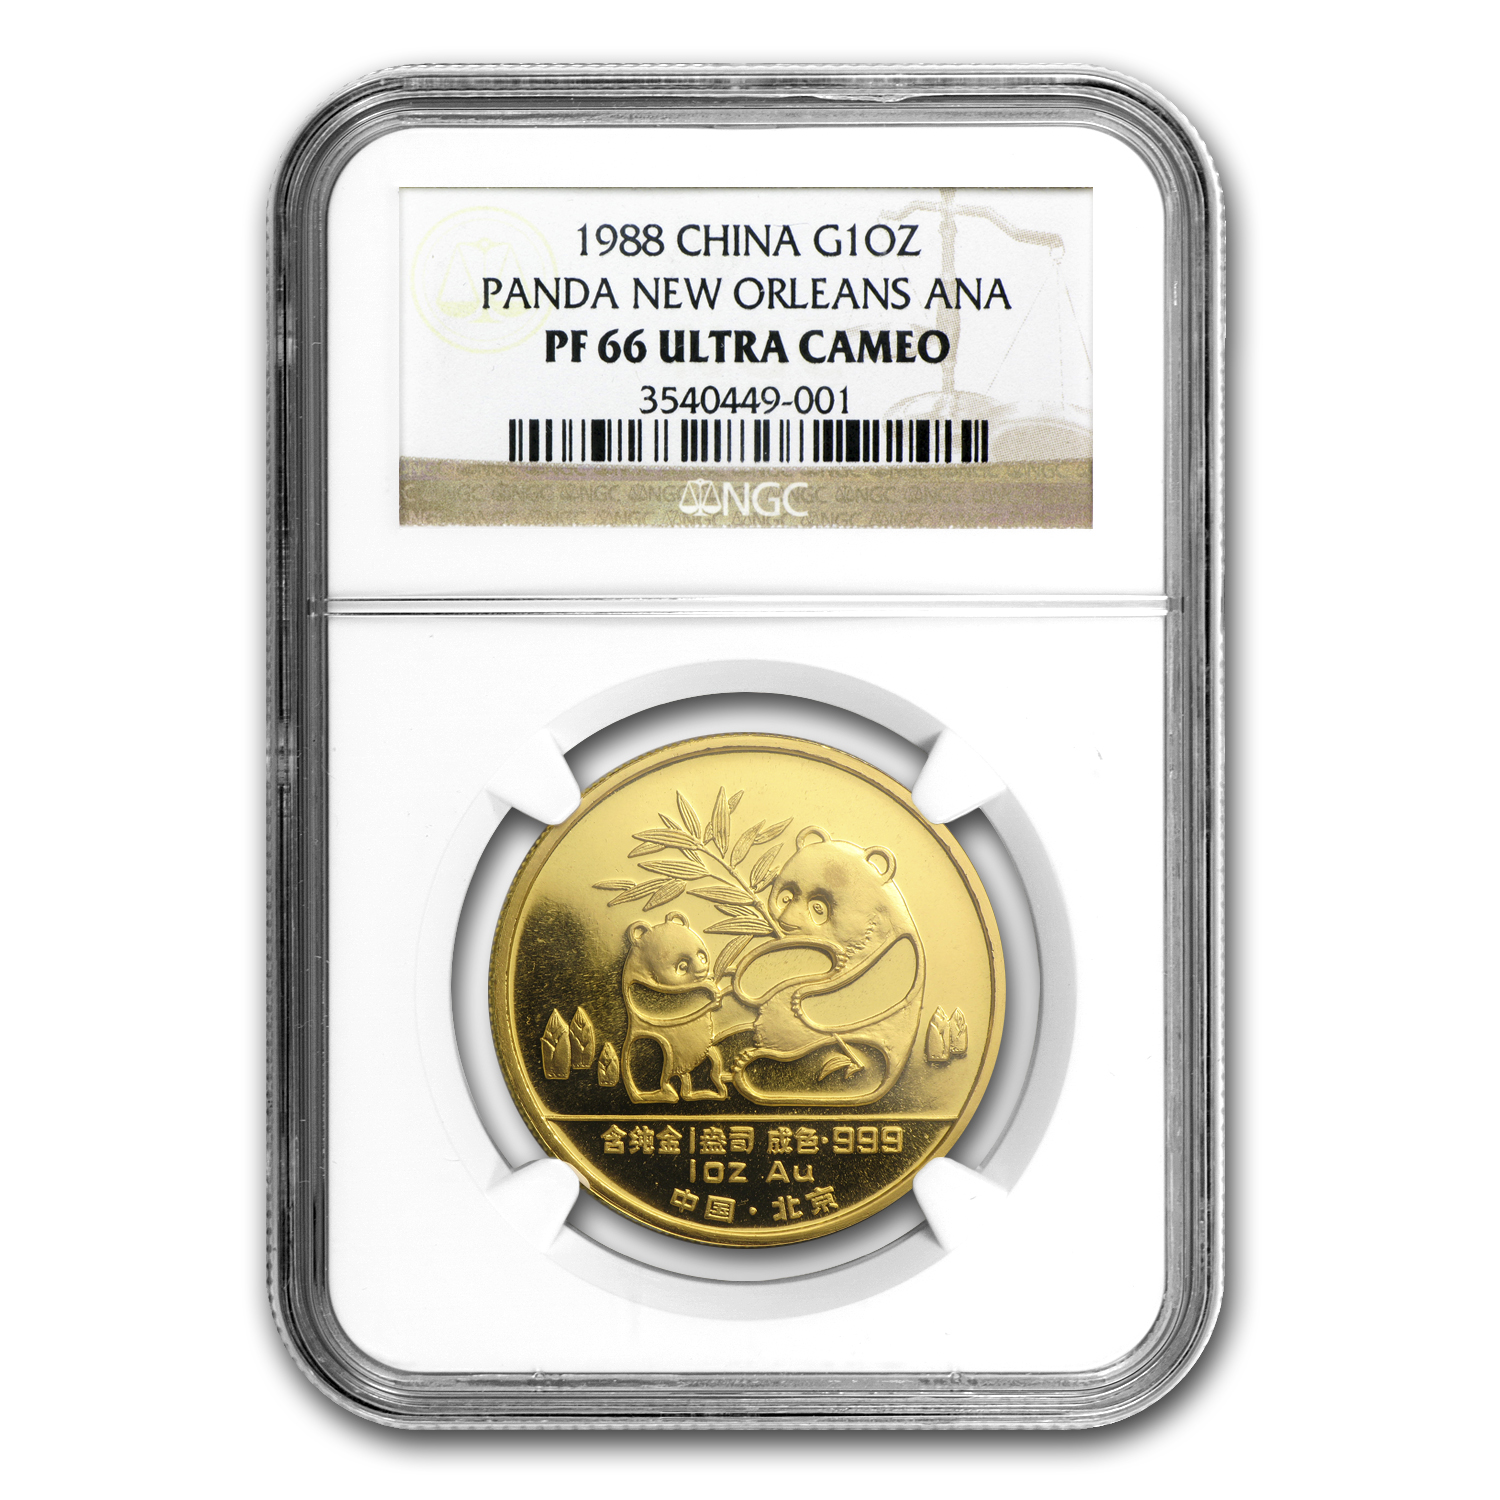 1988 China 1 oz Gold Panda PF-66 NGC (New Orleans)